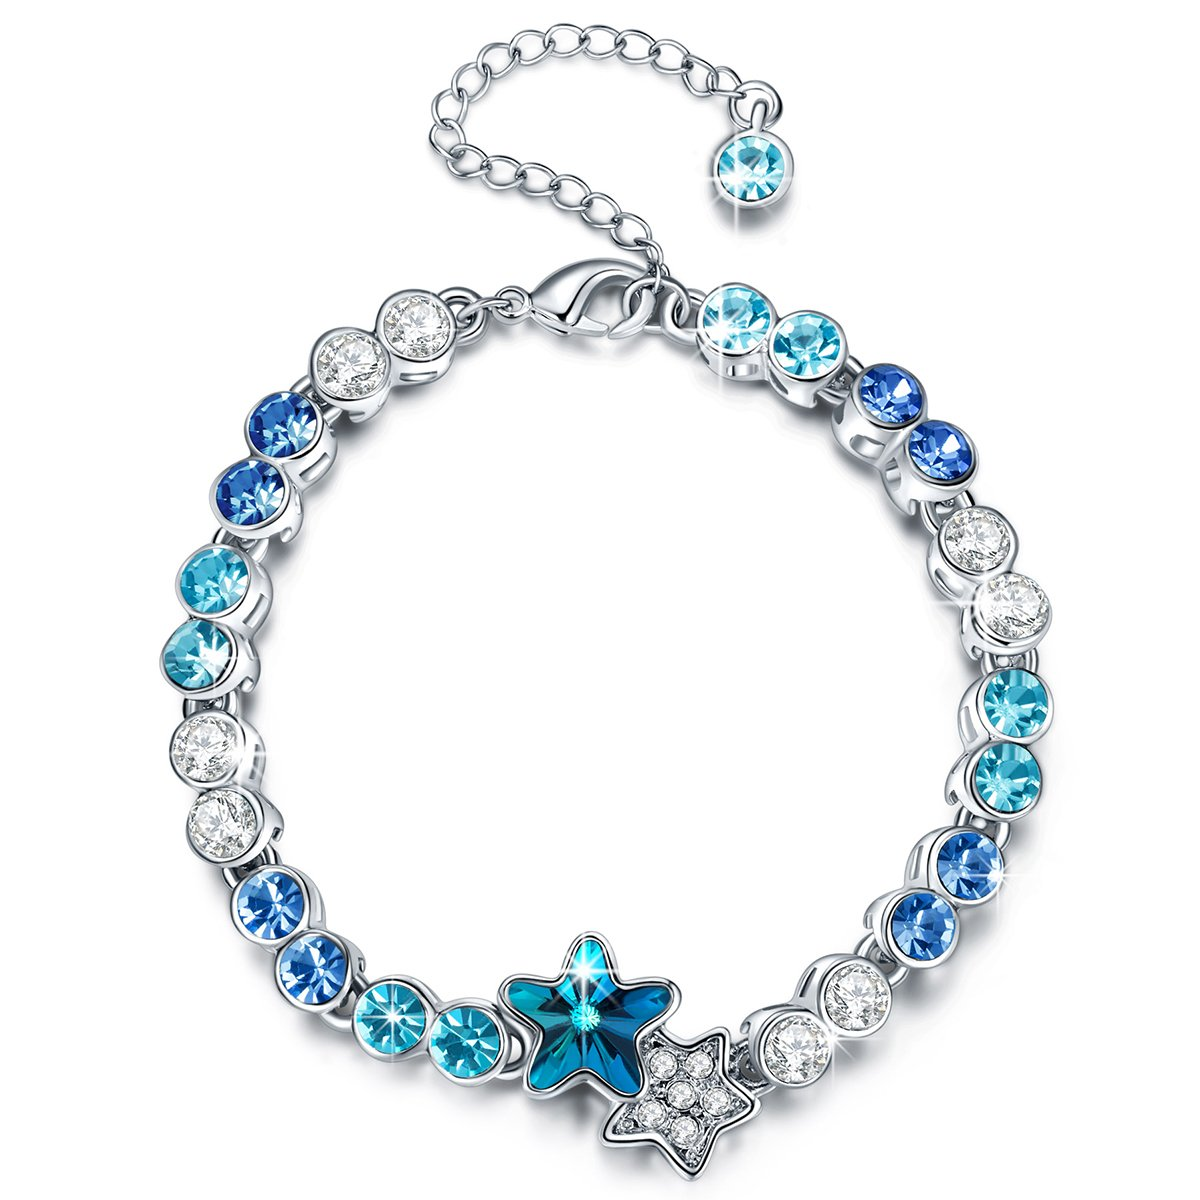 LADY COLOUR Anniversary Gifts Bracelet Blue Star Tennis Link Bracelet for Women Swarovski Crystals Jewelry for Her Birthday Gifts for Girlfriend Wife Graduation Gifts for Teens Girls Blue Wedding Gift